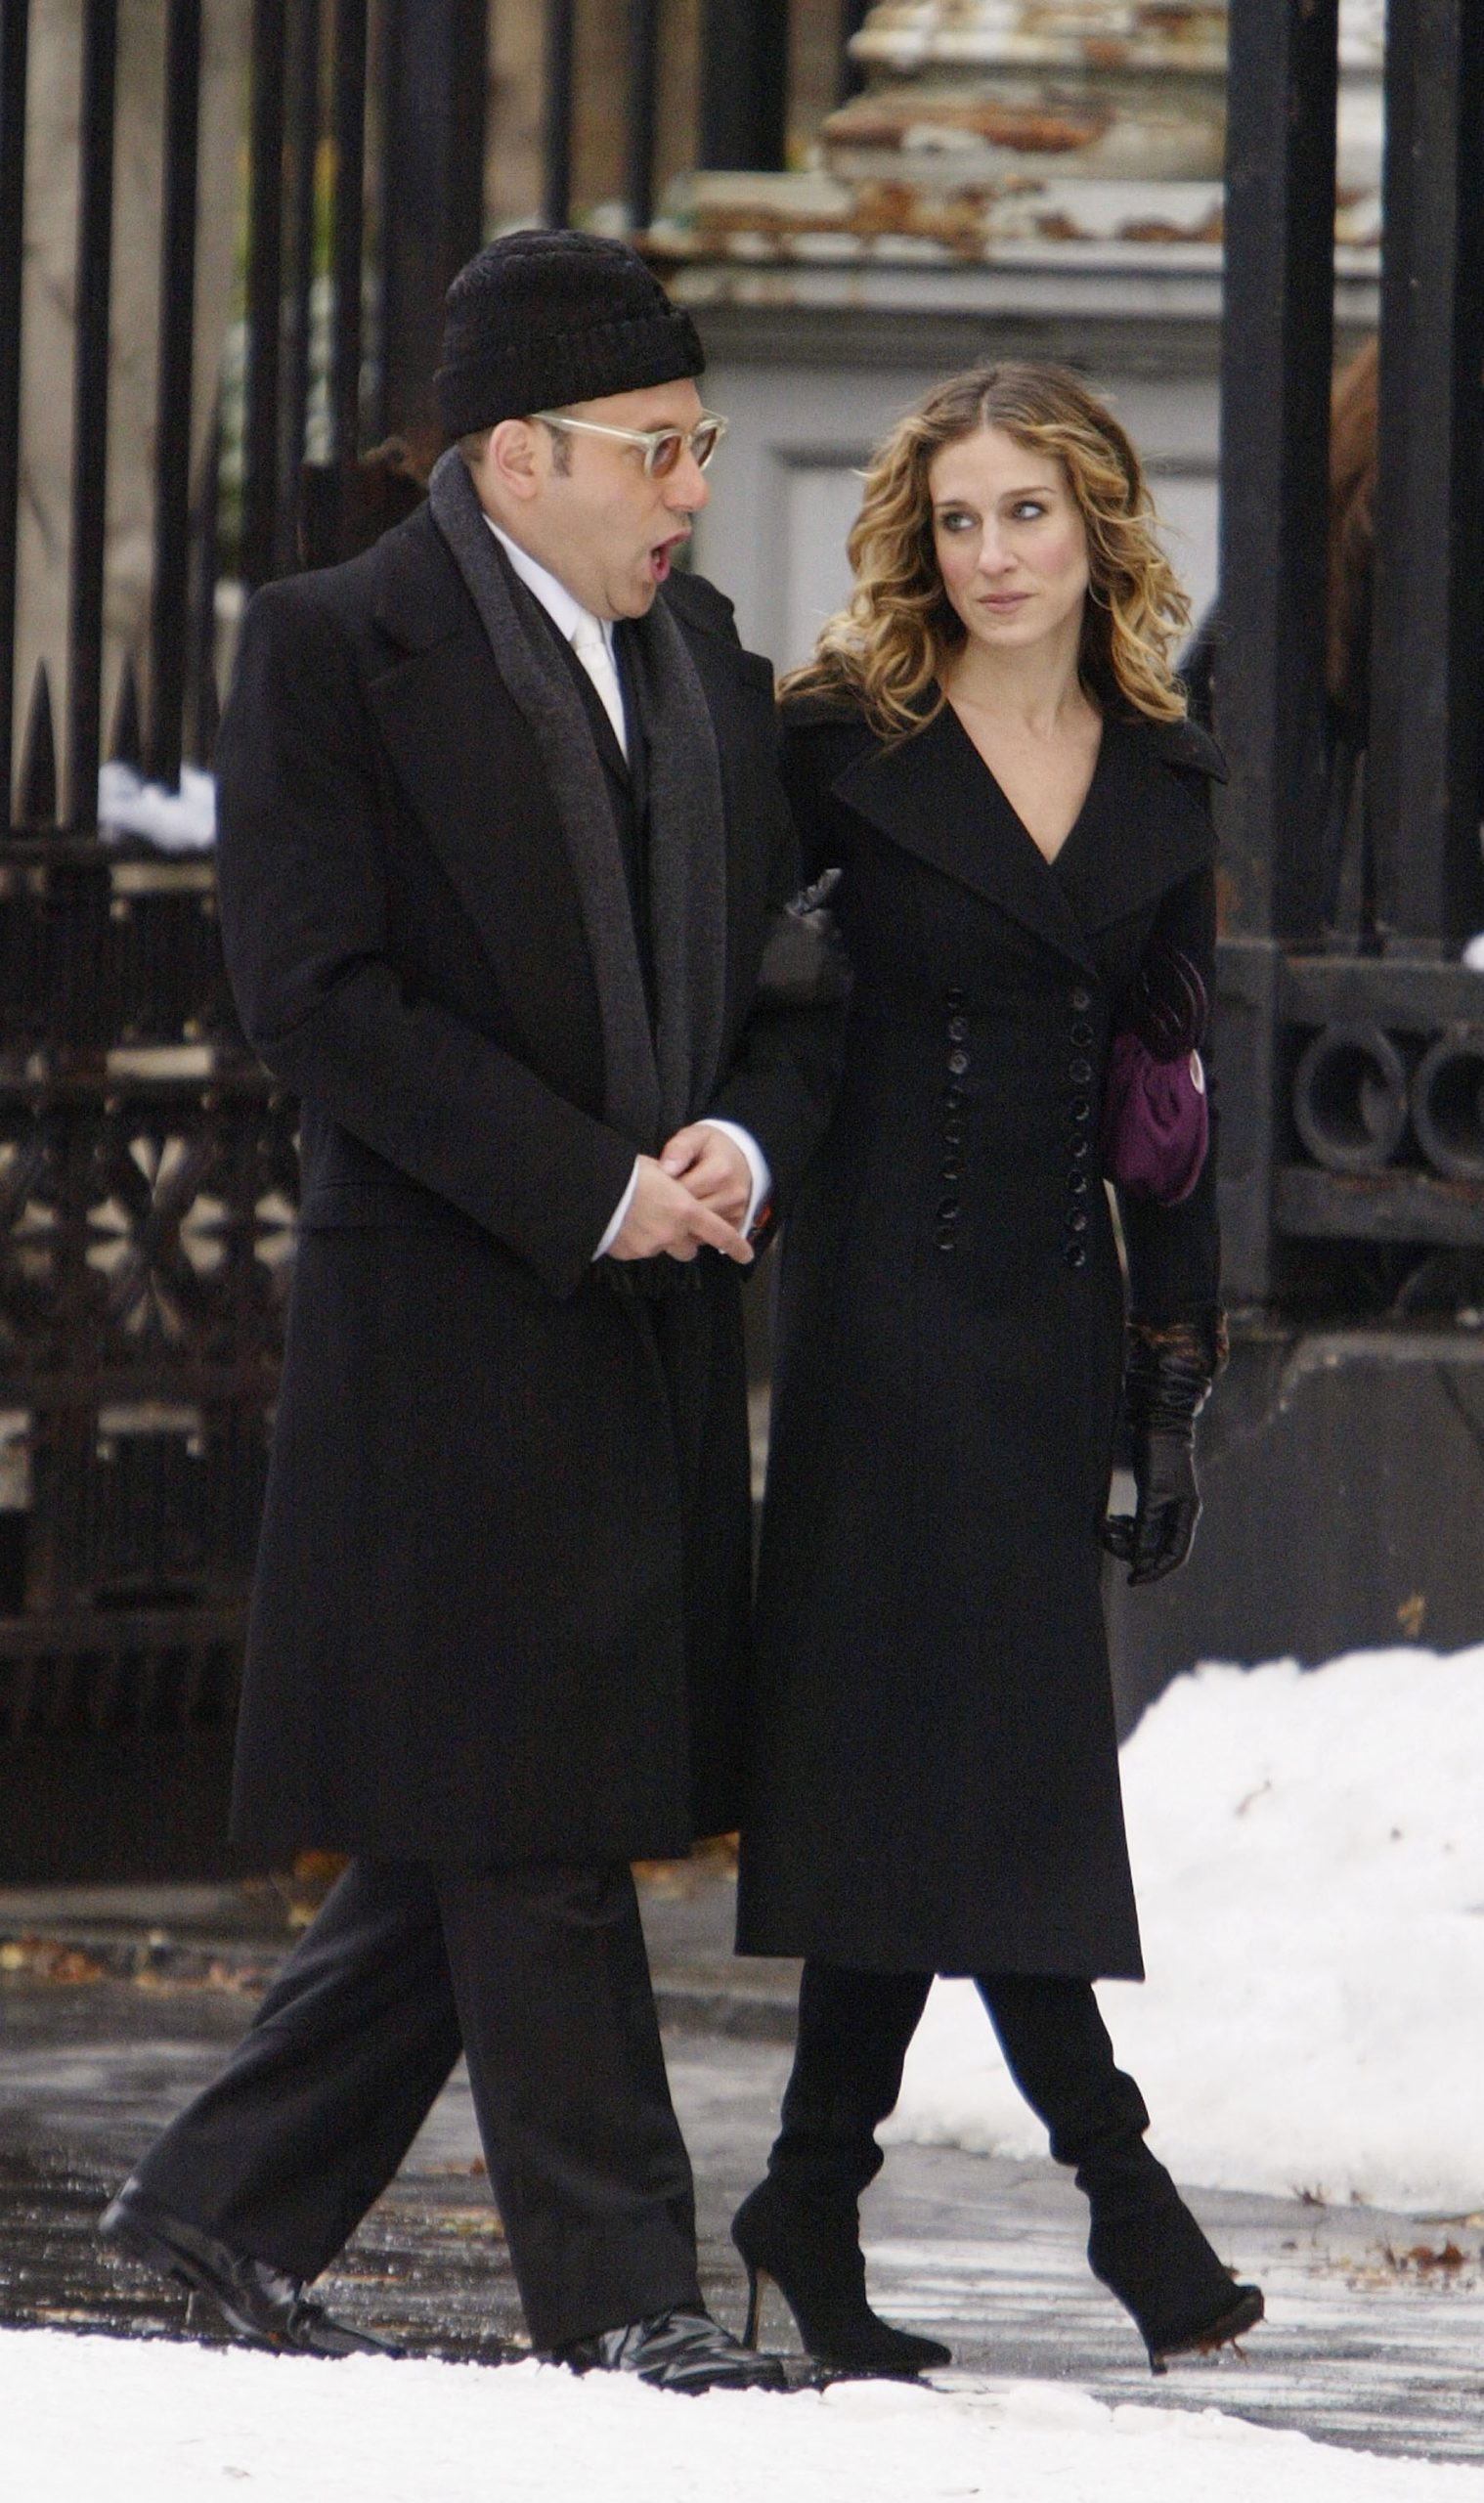 Willie Garson as Stanford Blatch and Sarah Jessica Parker as Carrie Bradshaw walk down a Manhattan street during the filming of season 6 of 'Sex and the City' in 2004